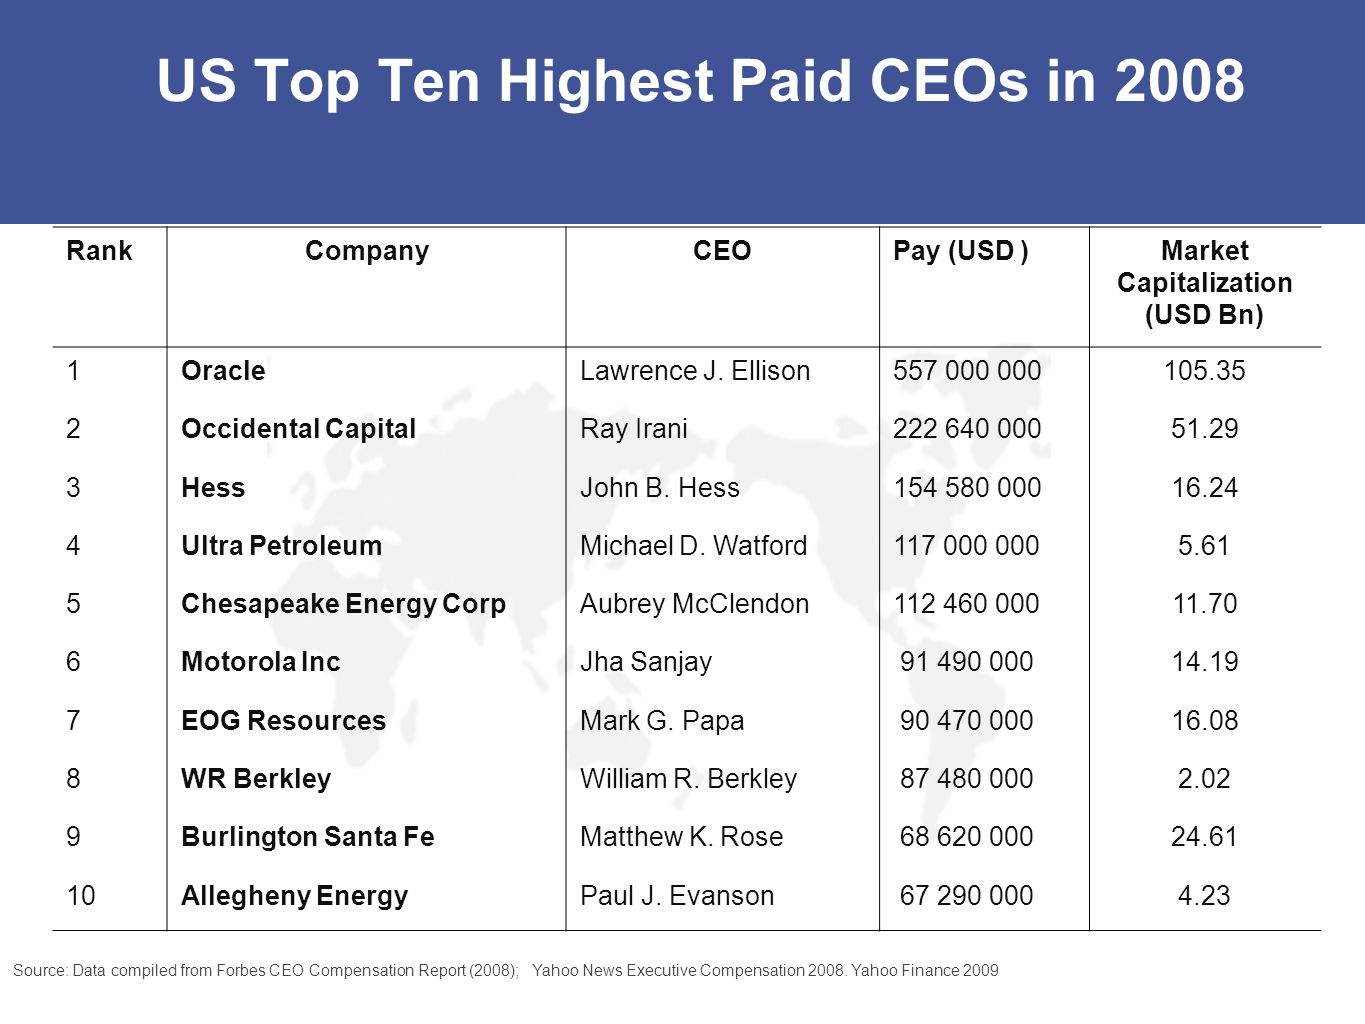 US Top Ten Highest Paid CEOs in 2008 RankCompanyCEOPay (USD )Market Capitalization (USD Bn) 1OracleLawrence J. Ellison557 000 000105.35 2Occidental Ca